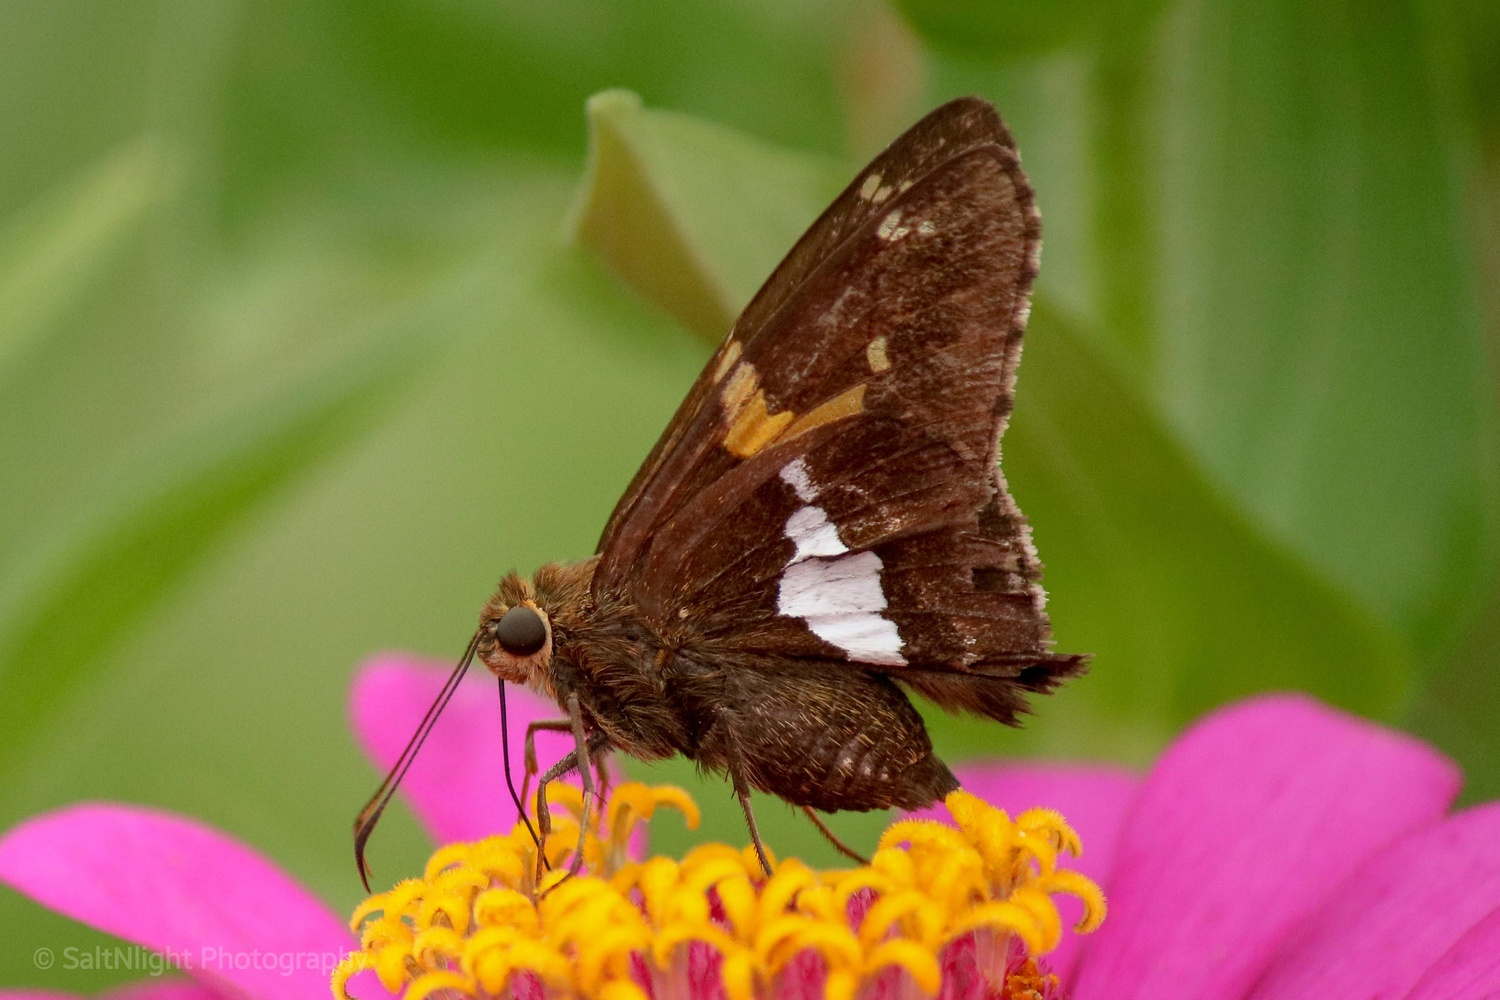 Silver spotted skipper by Melvin Morgan